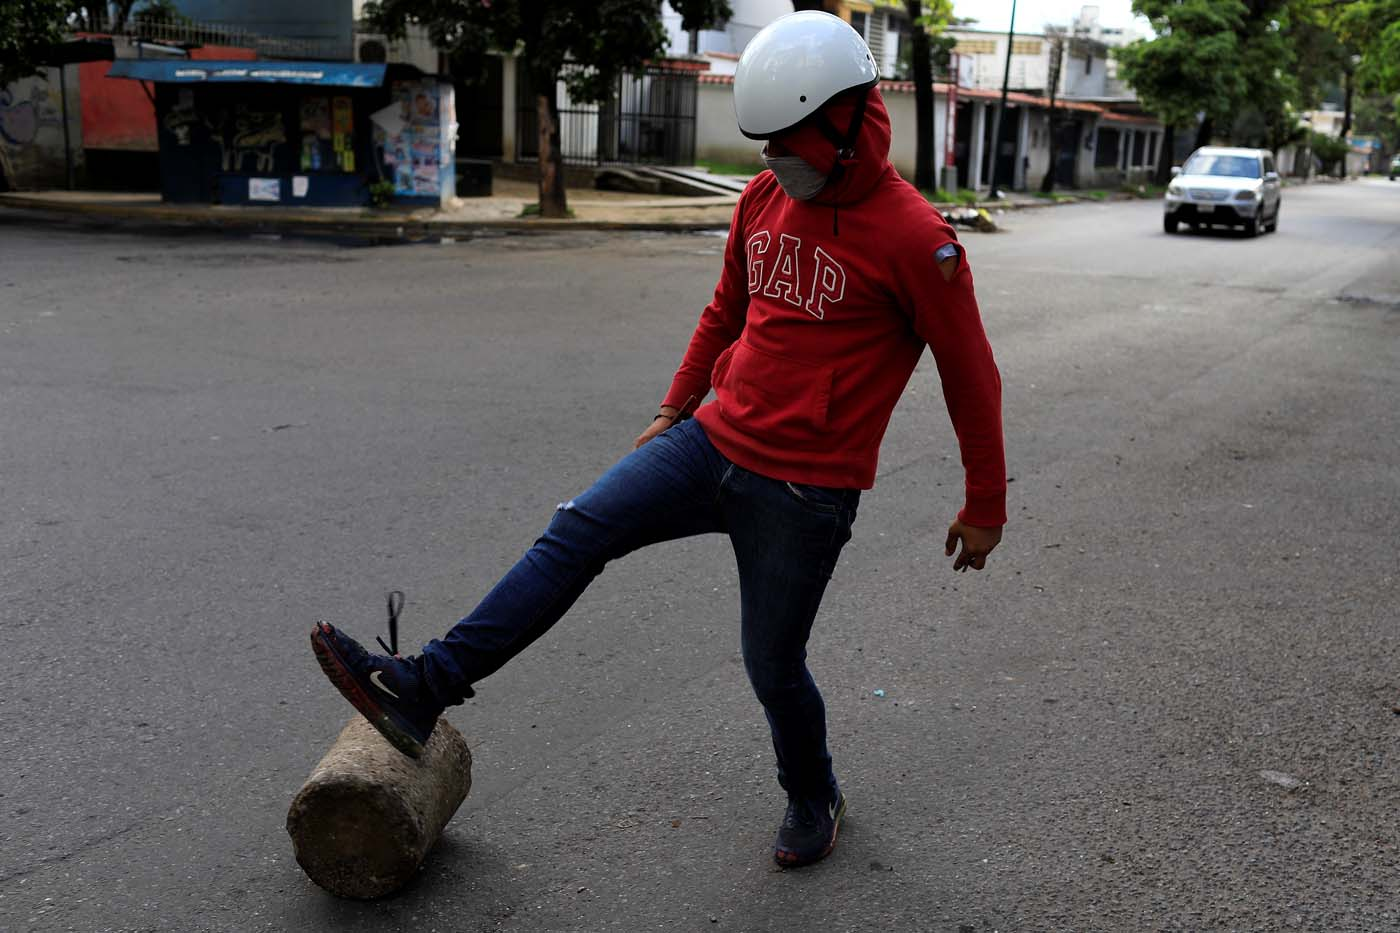 A demonstrator moves a piece of wood to prepare a barricade during a strike called to protest against Venezuelan President Nicolas Maduro's government in Caracas, Venezuela, July 26, 2017. REUTERS/Marco Bello